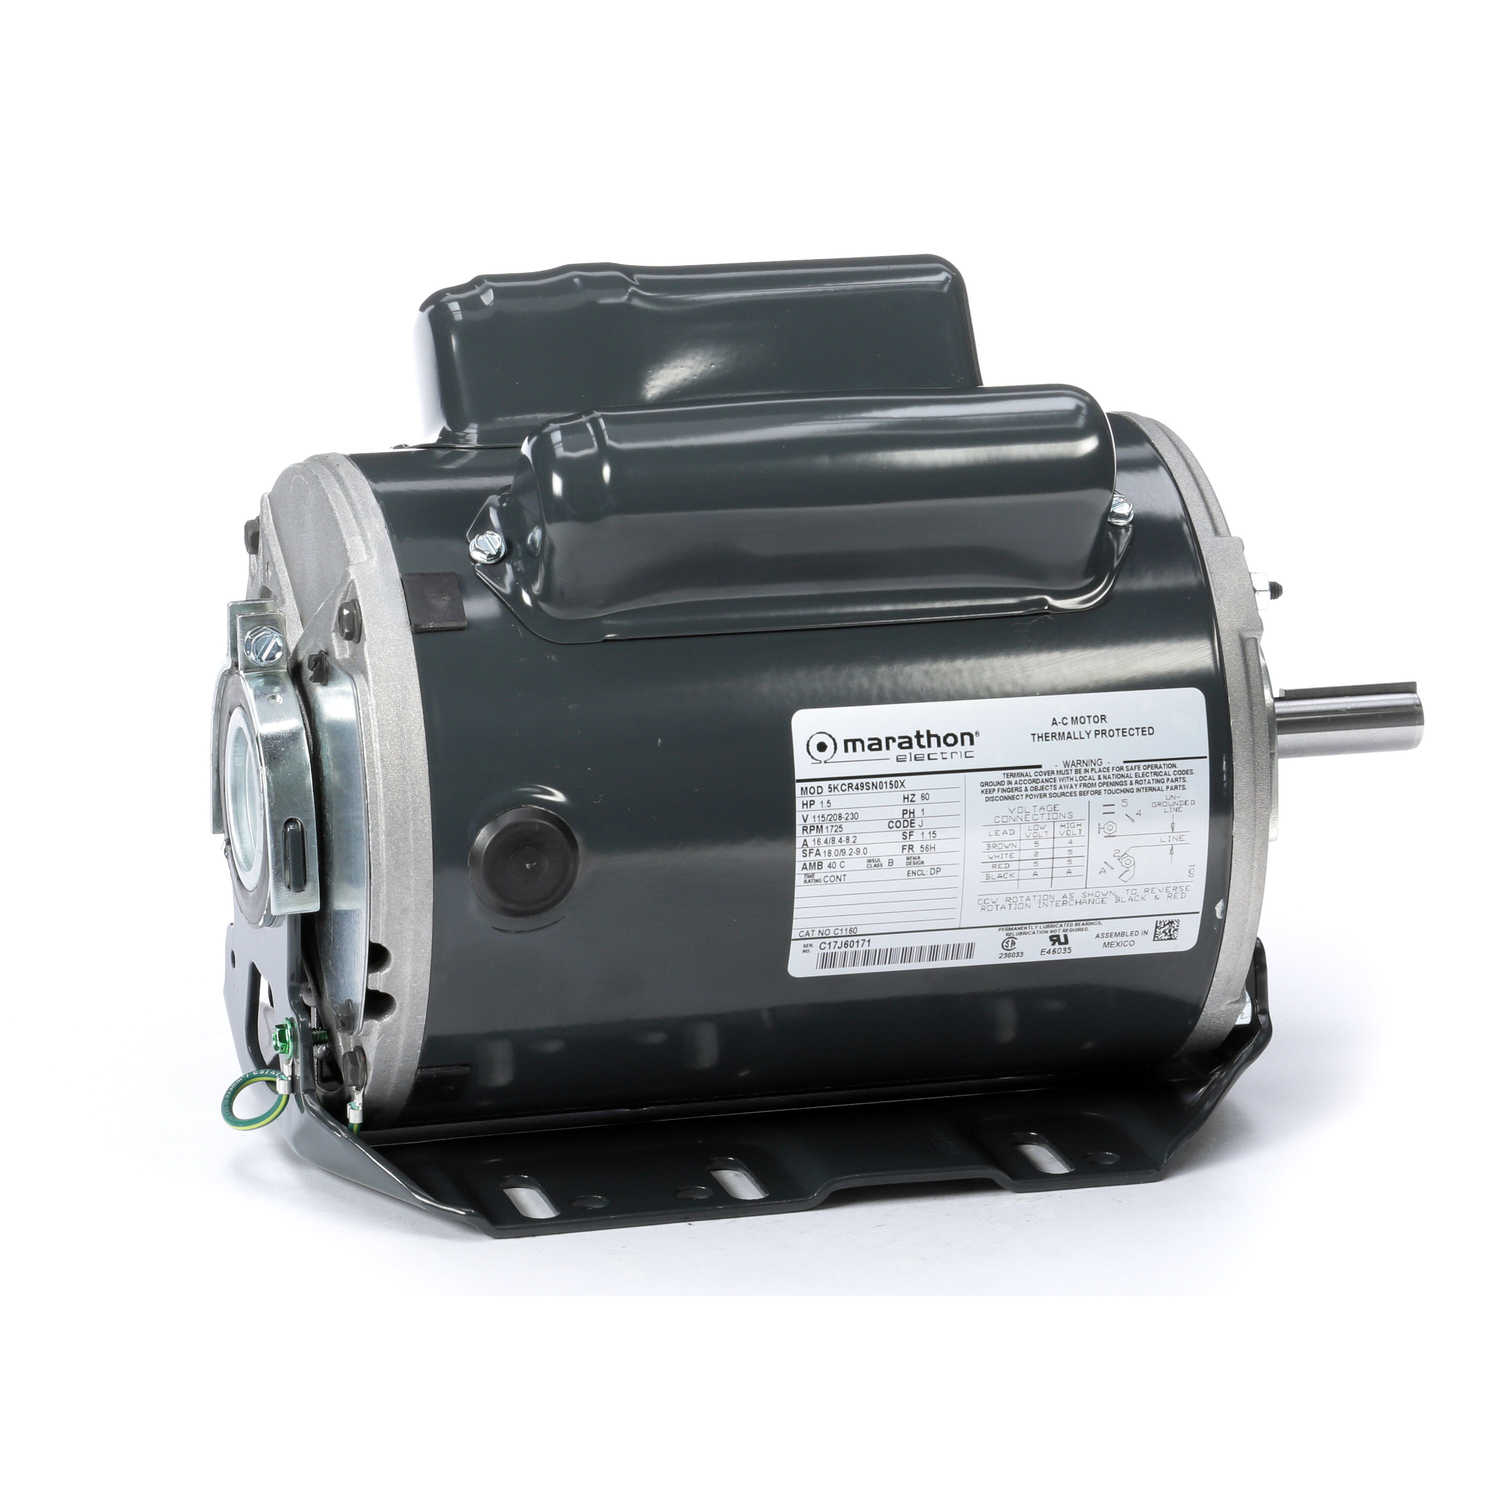 hight resolution of marathon motors 5kcr49sn0150x c1160 regal beloit marathon electric ac motor thermally protected 15 hp field wiring